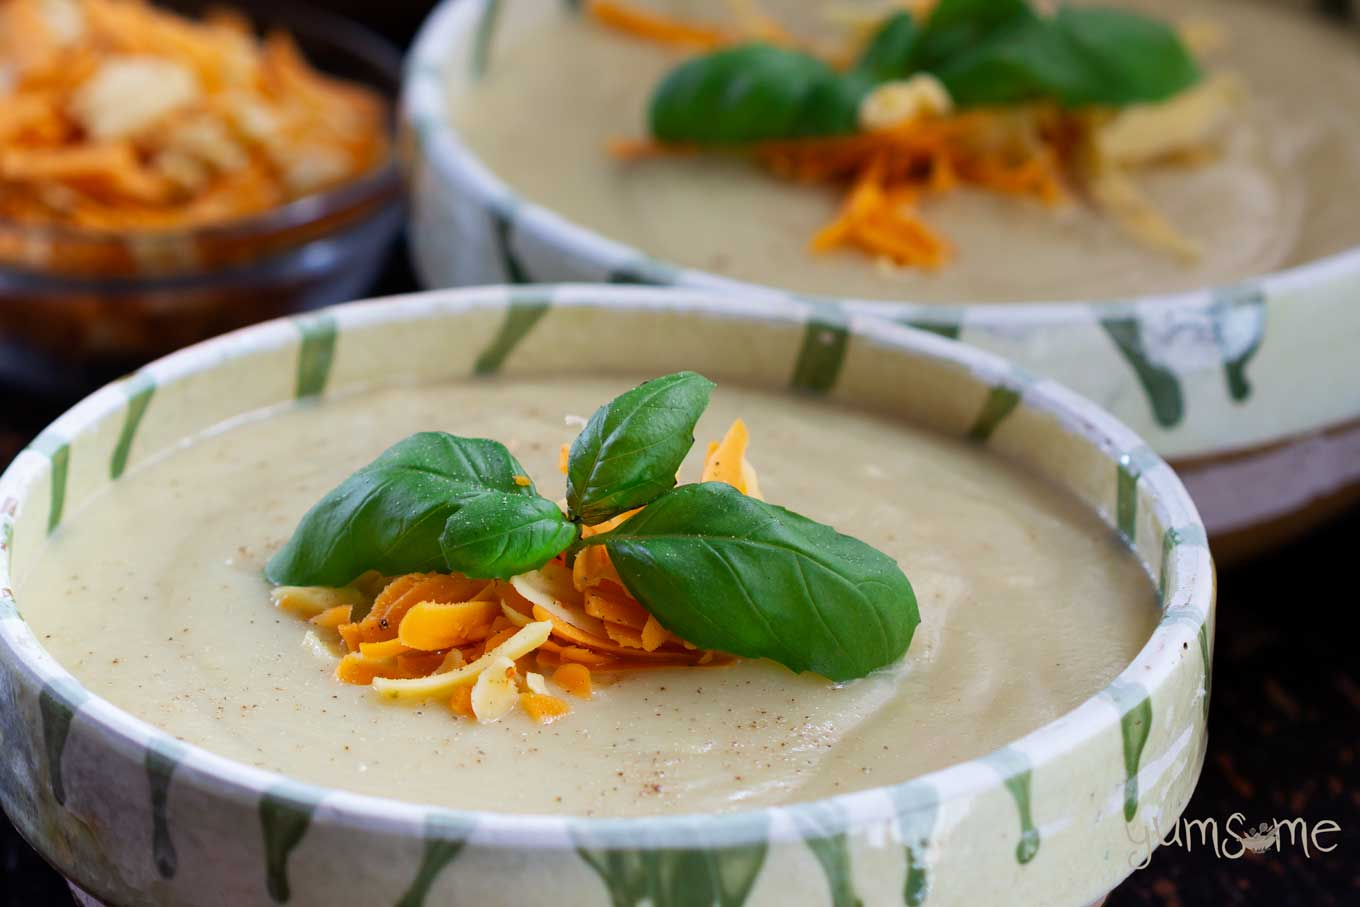 Closeup shot of a bowl of creamy vegan cauliflower soup, garnished with herbs and grated cheese.